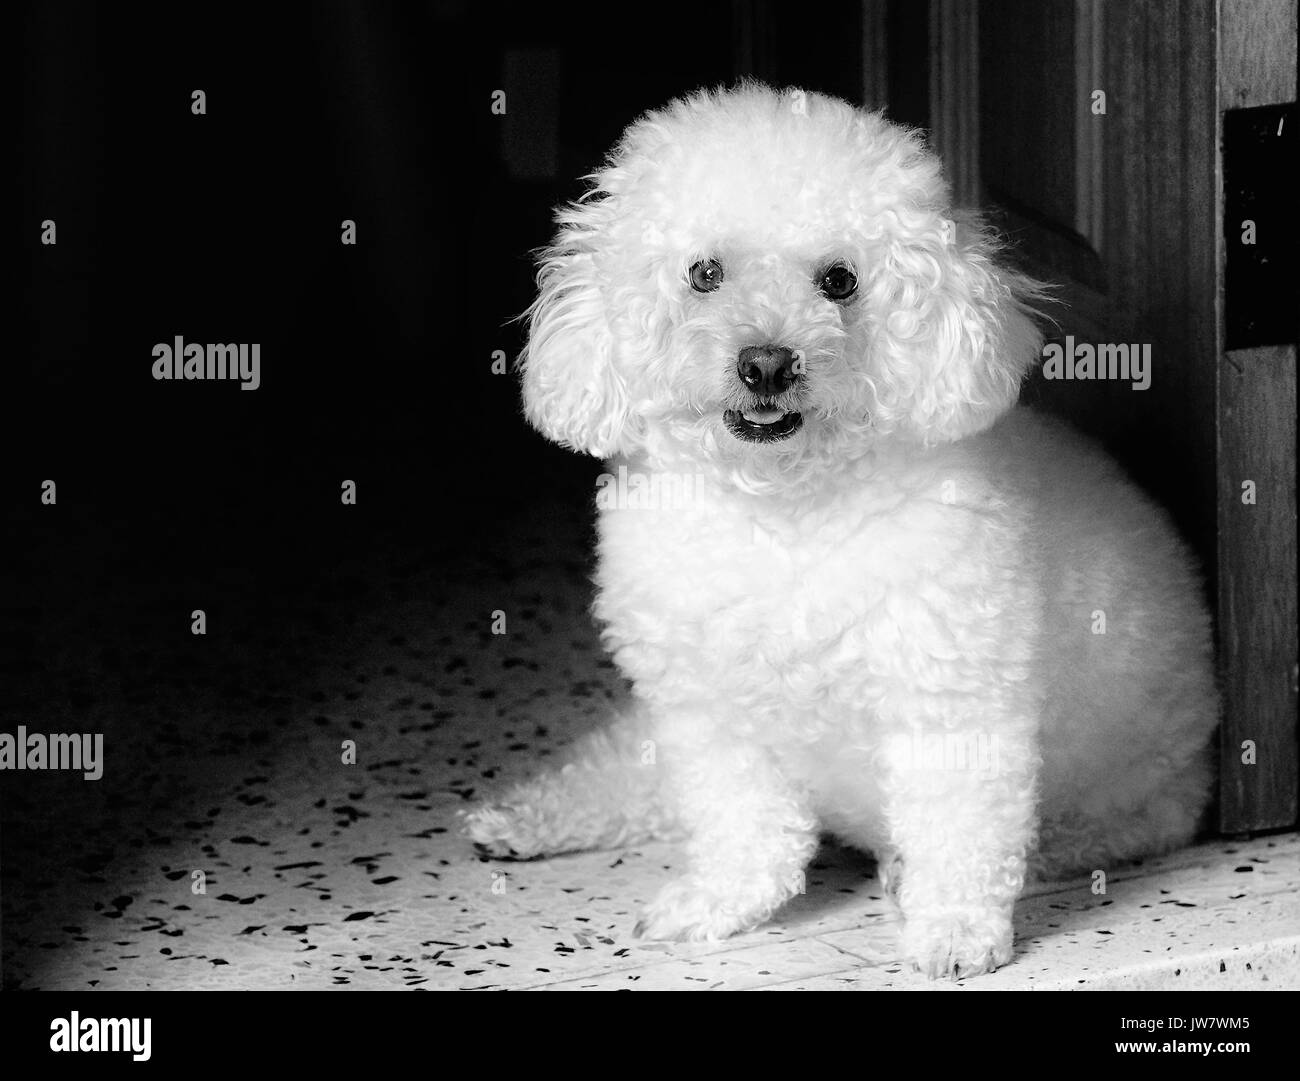 Toy Poodle Black and White Stock Photos & Images - Alamy